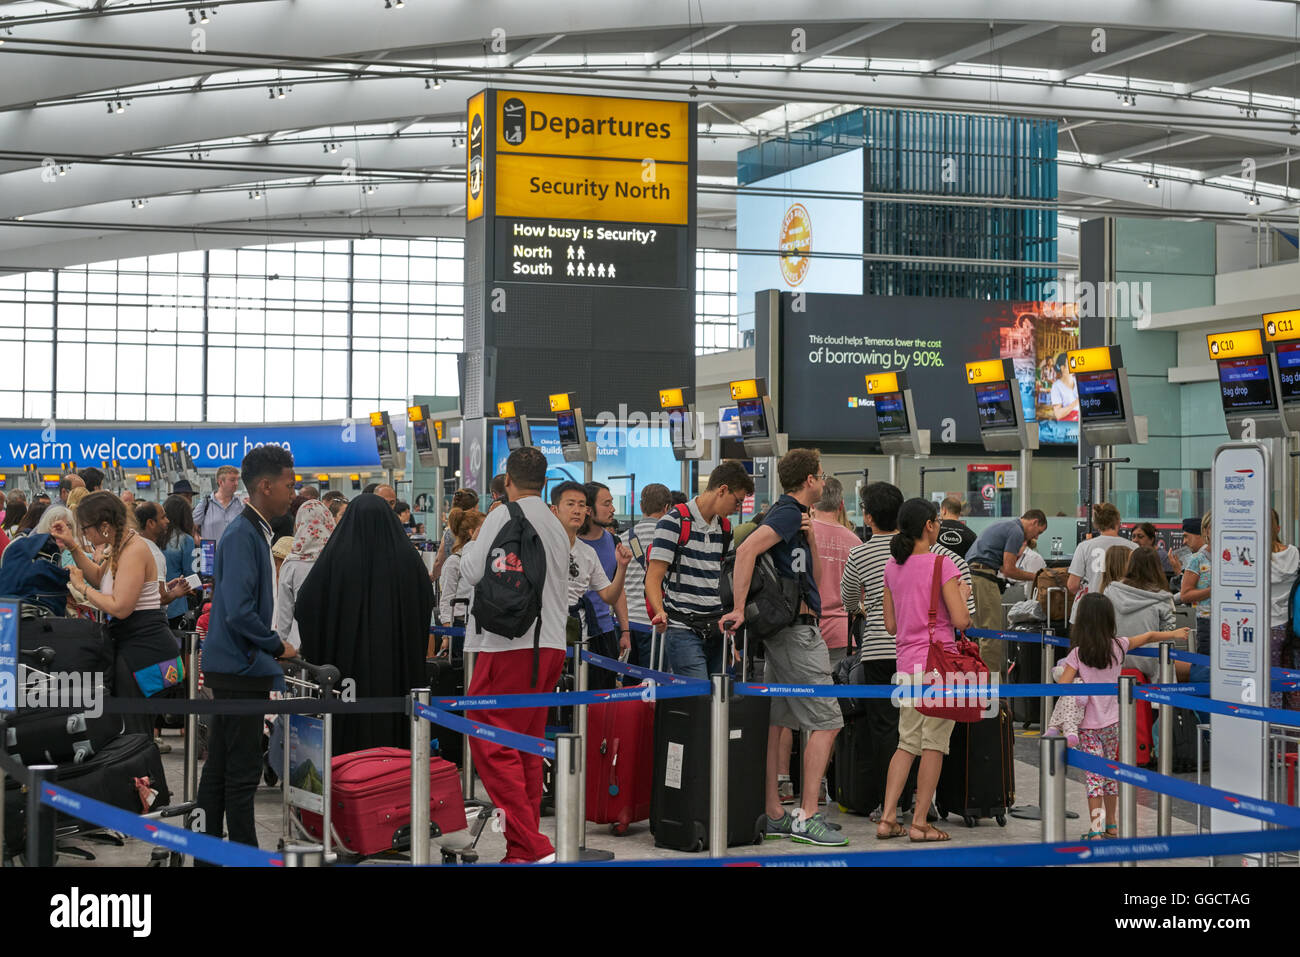 heathrow airport check in, departures terminal 5 - Stock Image